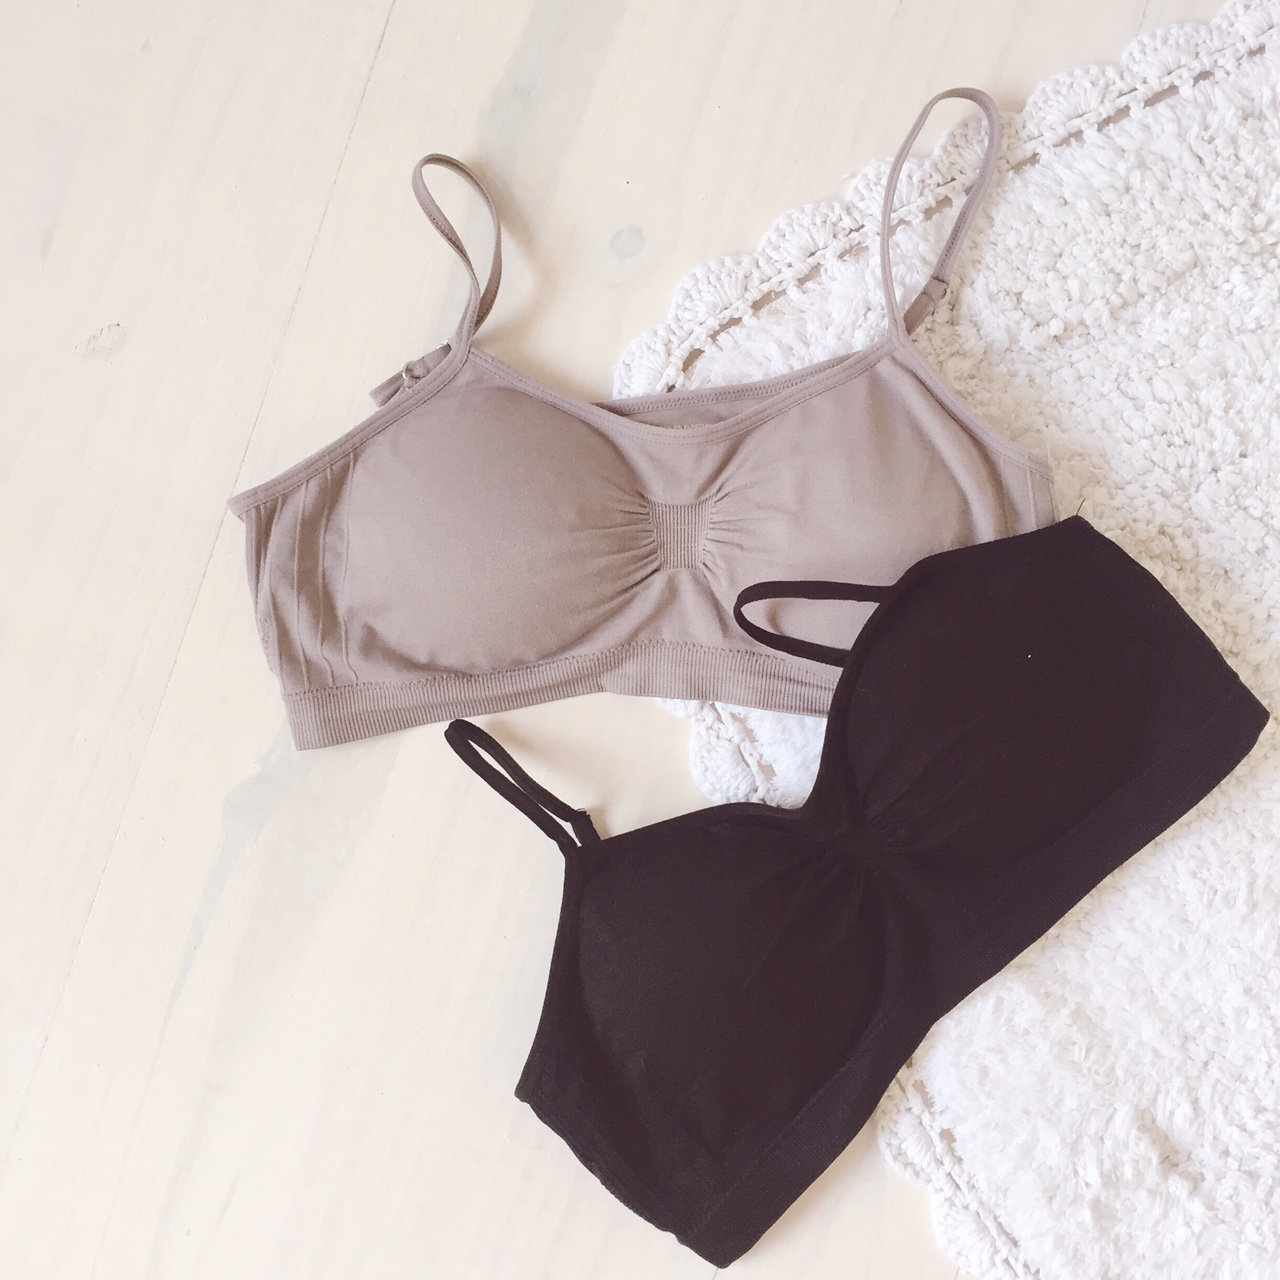 Comfortable Bras - Mr Price Sports Bras